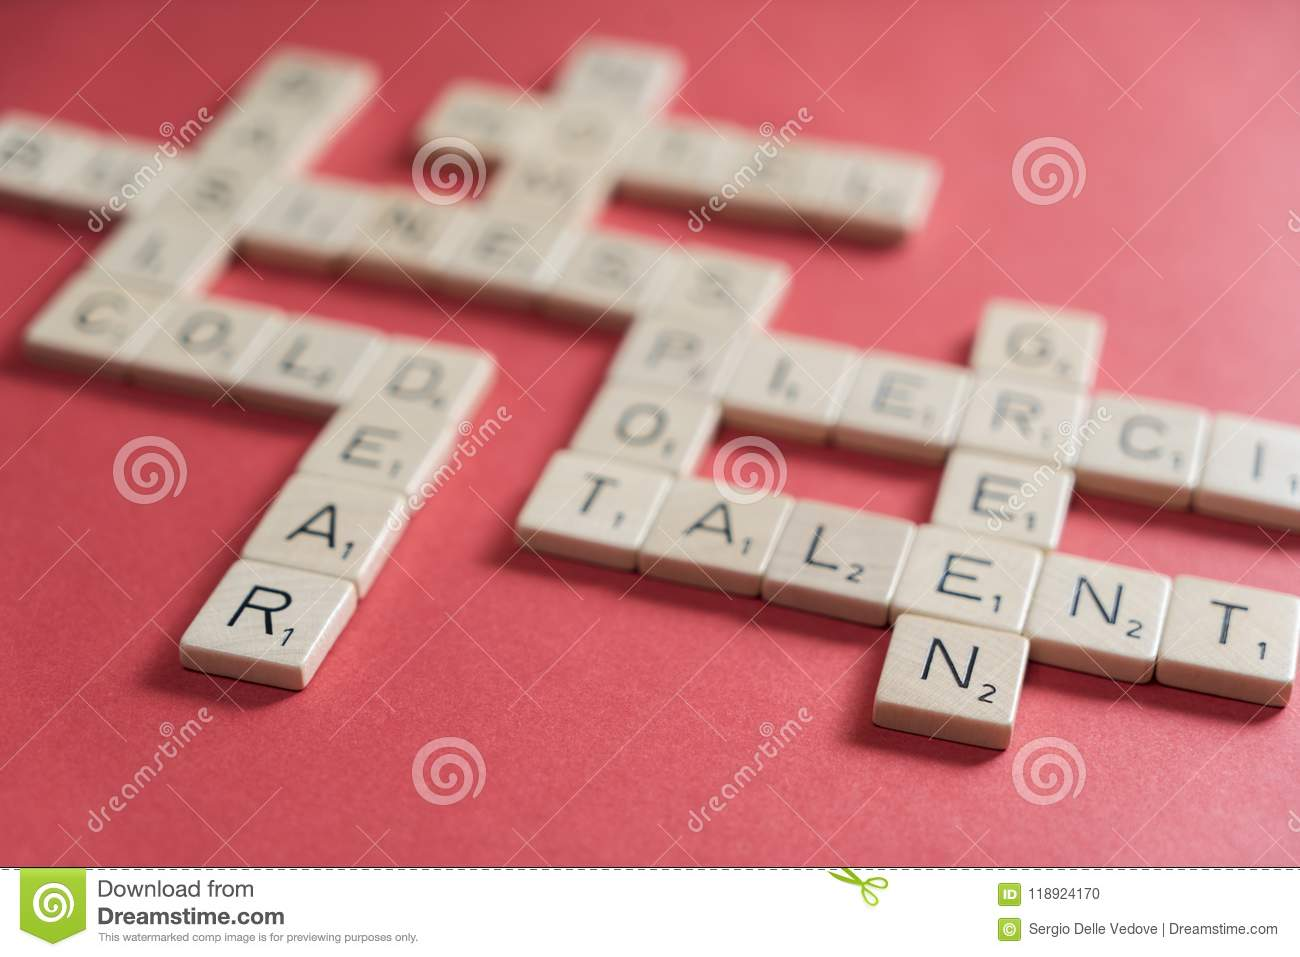 Scrabble play stock photo  Image of letter, blank, concept